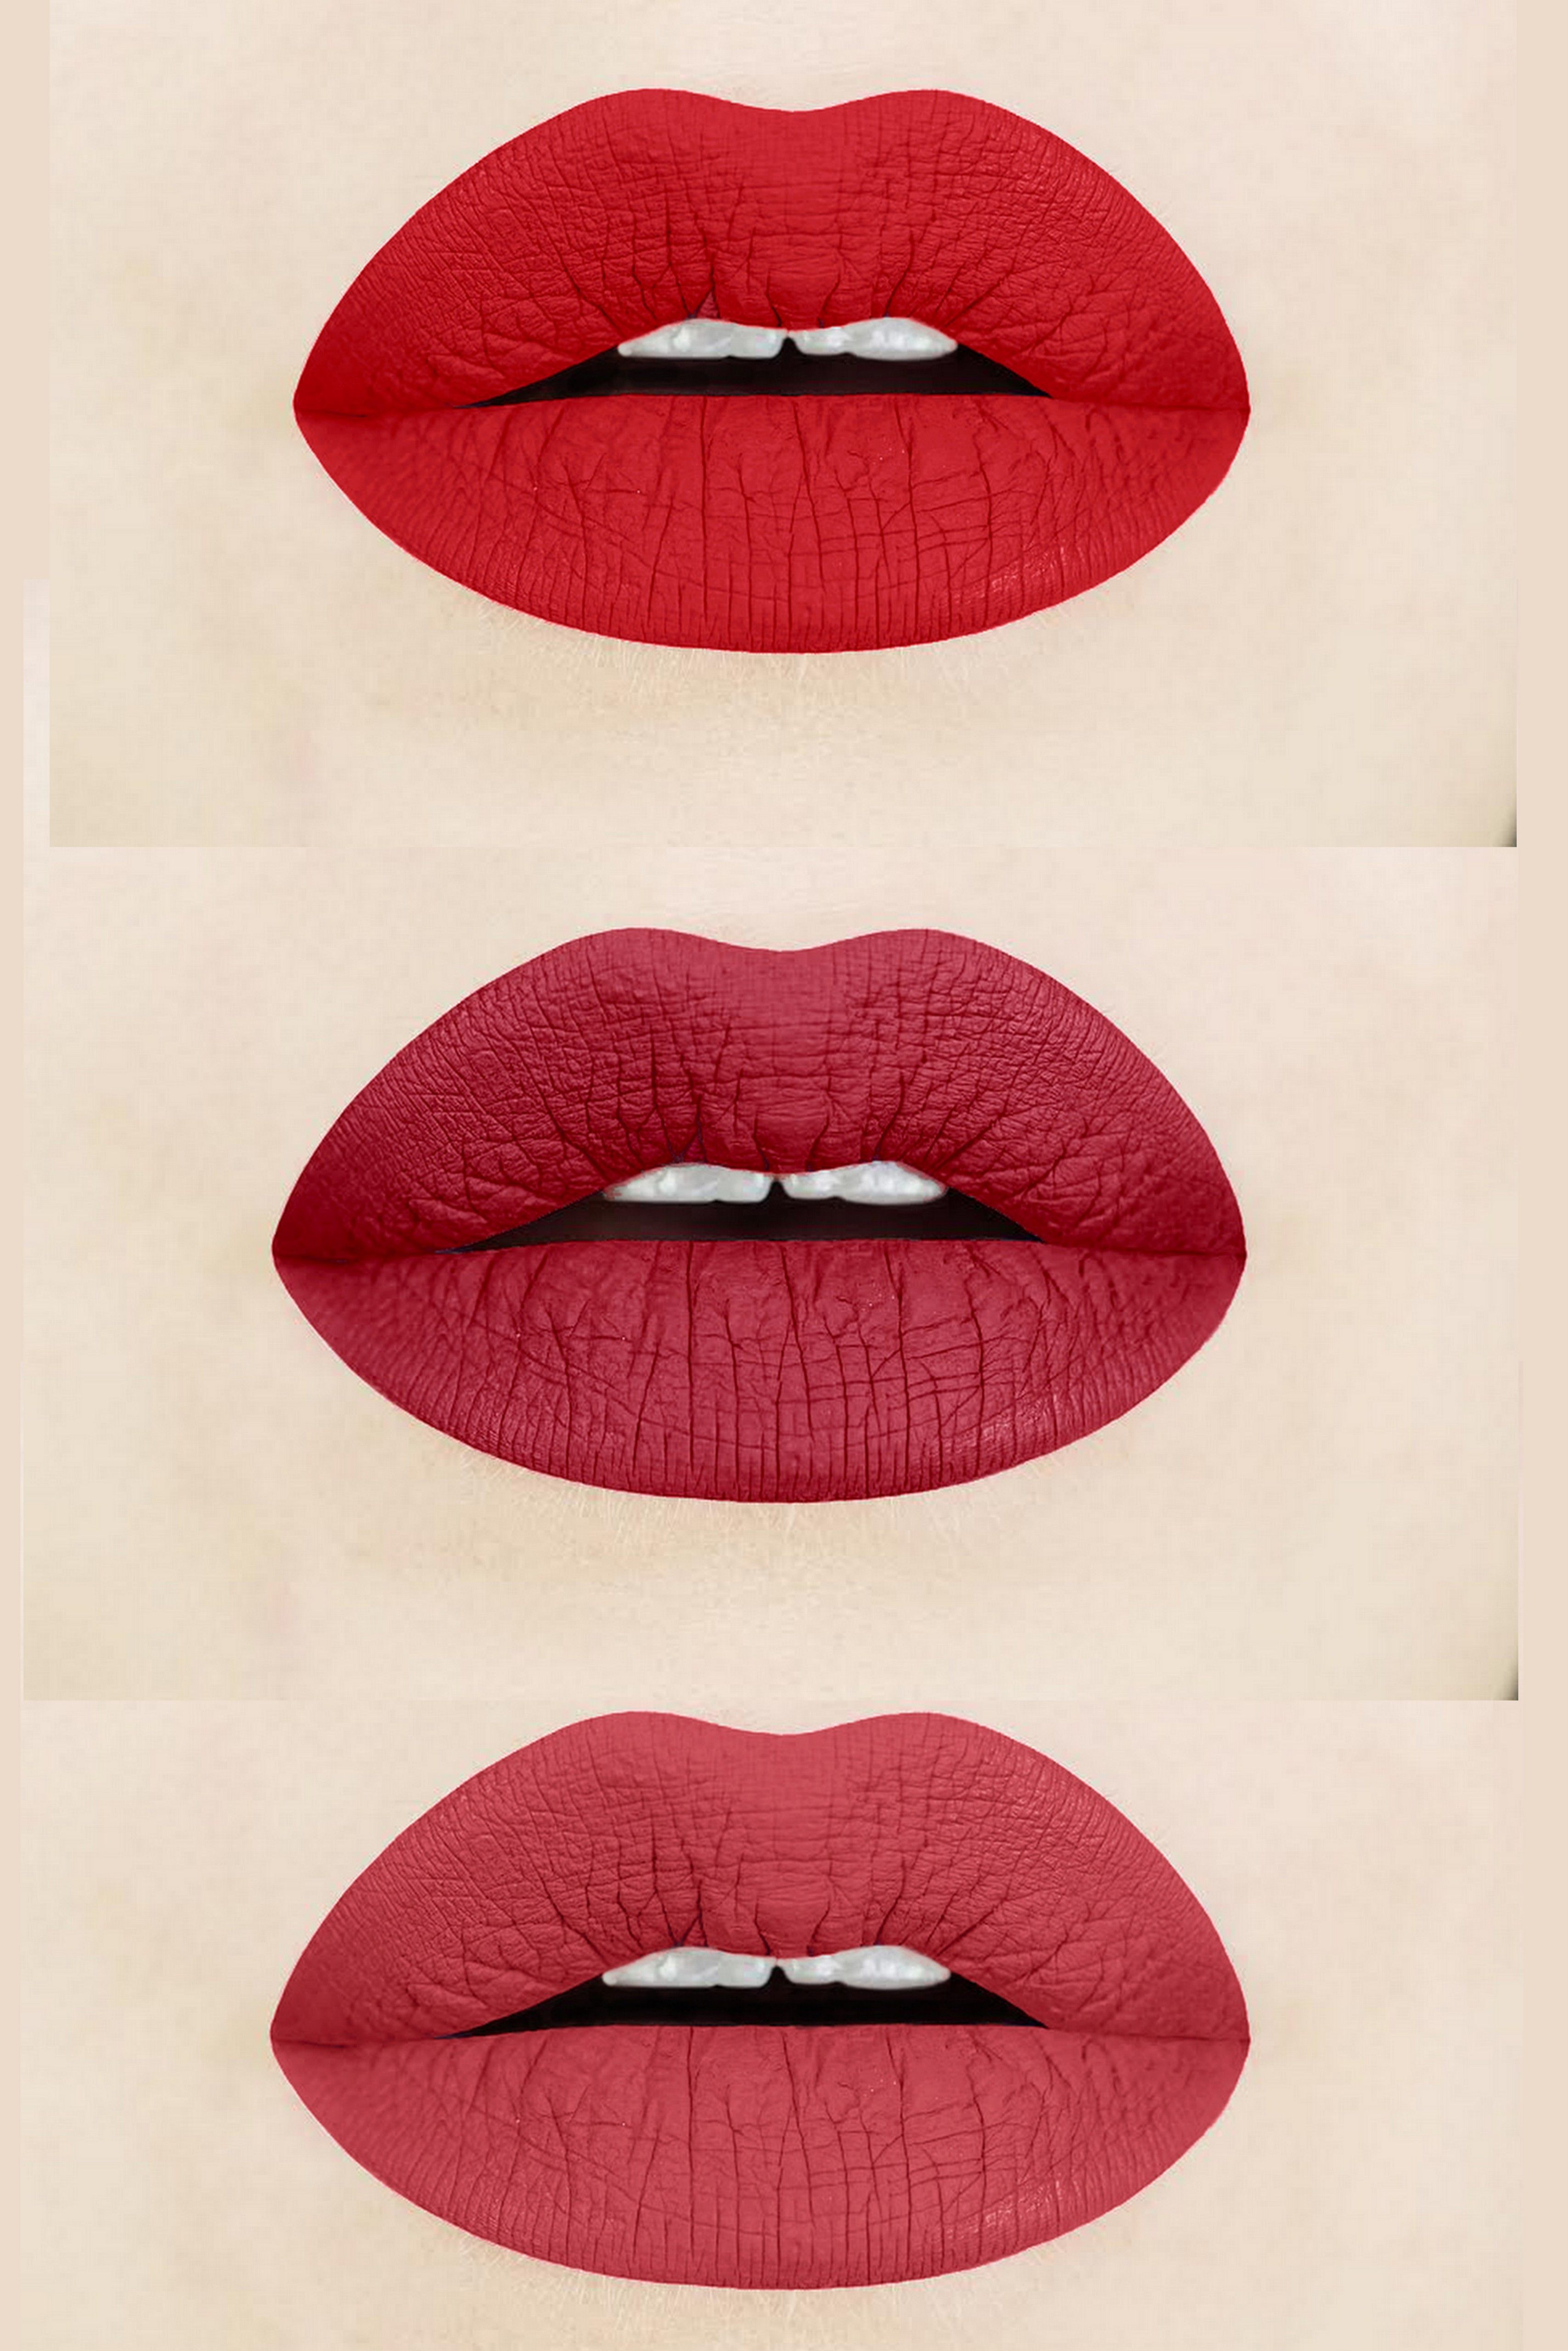 Flamenco Power Brick Red Matte Liquid Lipstick 17 Each Shade Is Handcrafted In Small Batches Red Liquid Lipstick Lipstick Cruelty Free Liquid Lipstick